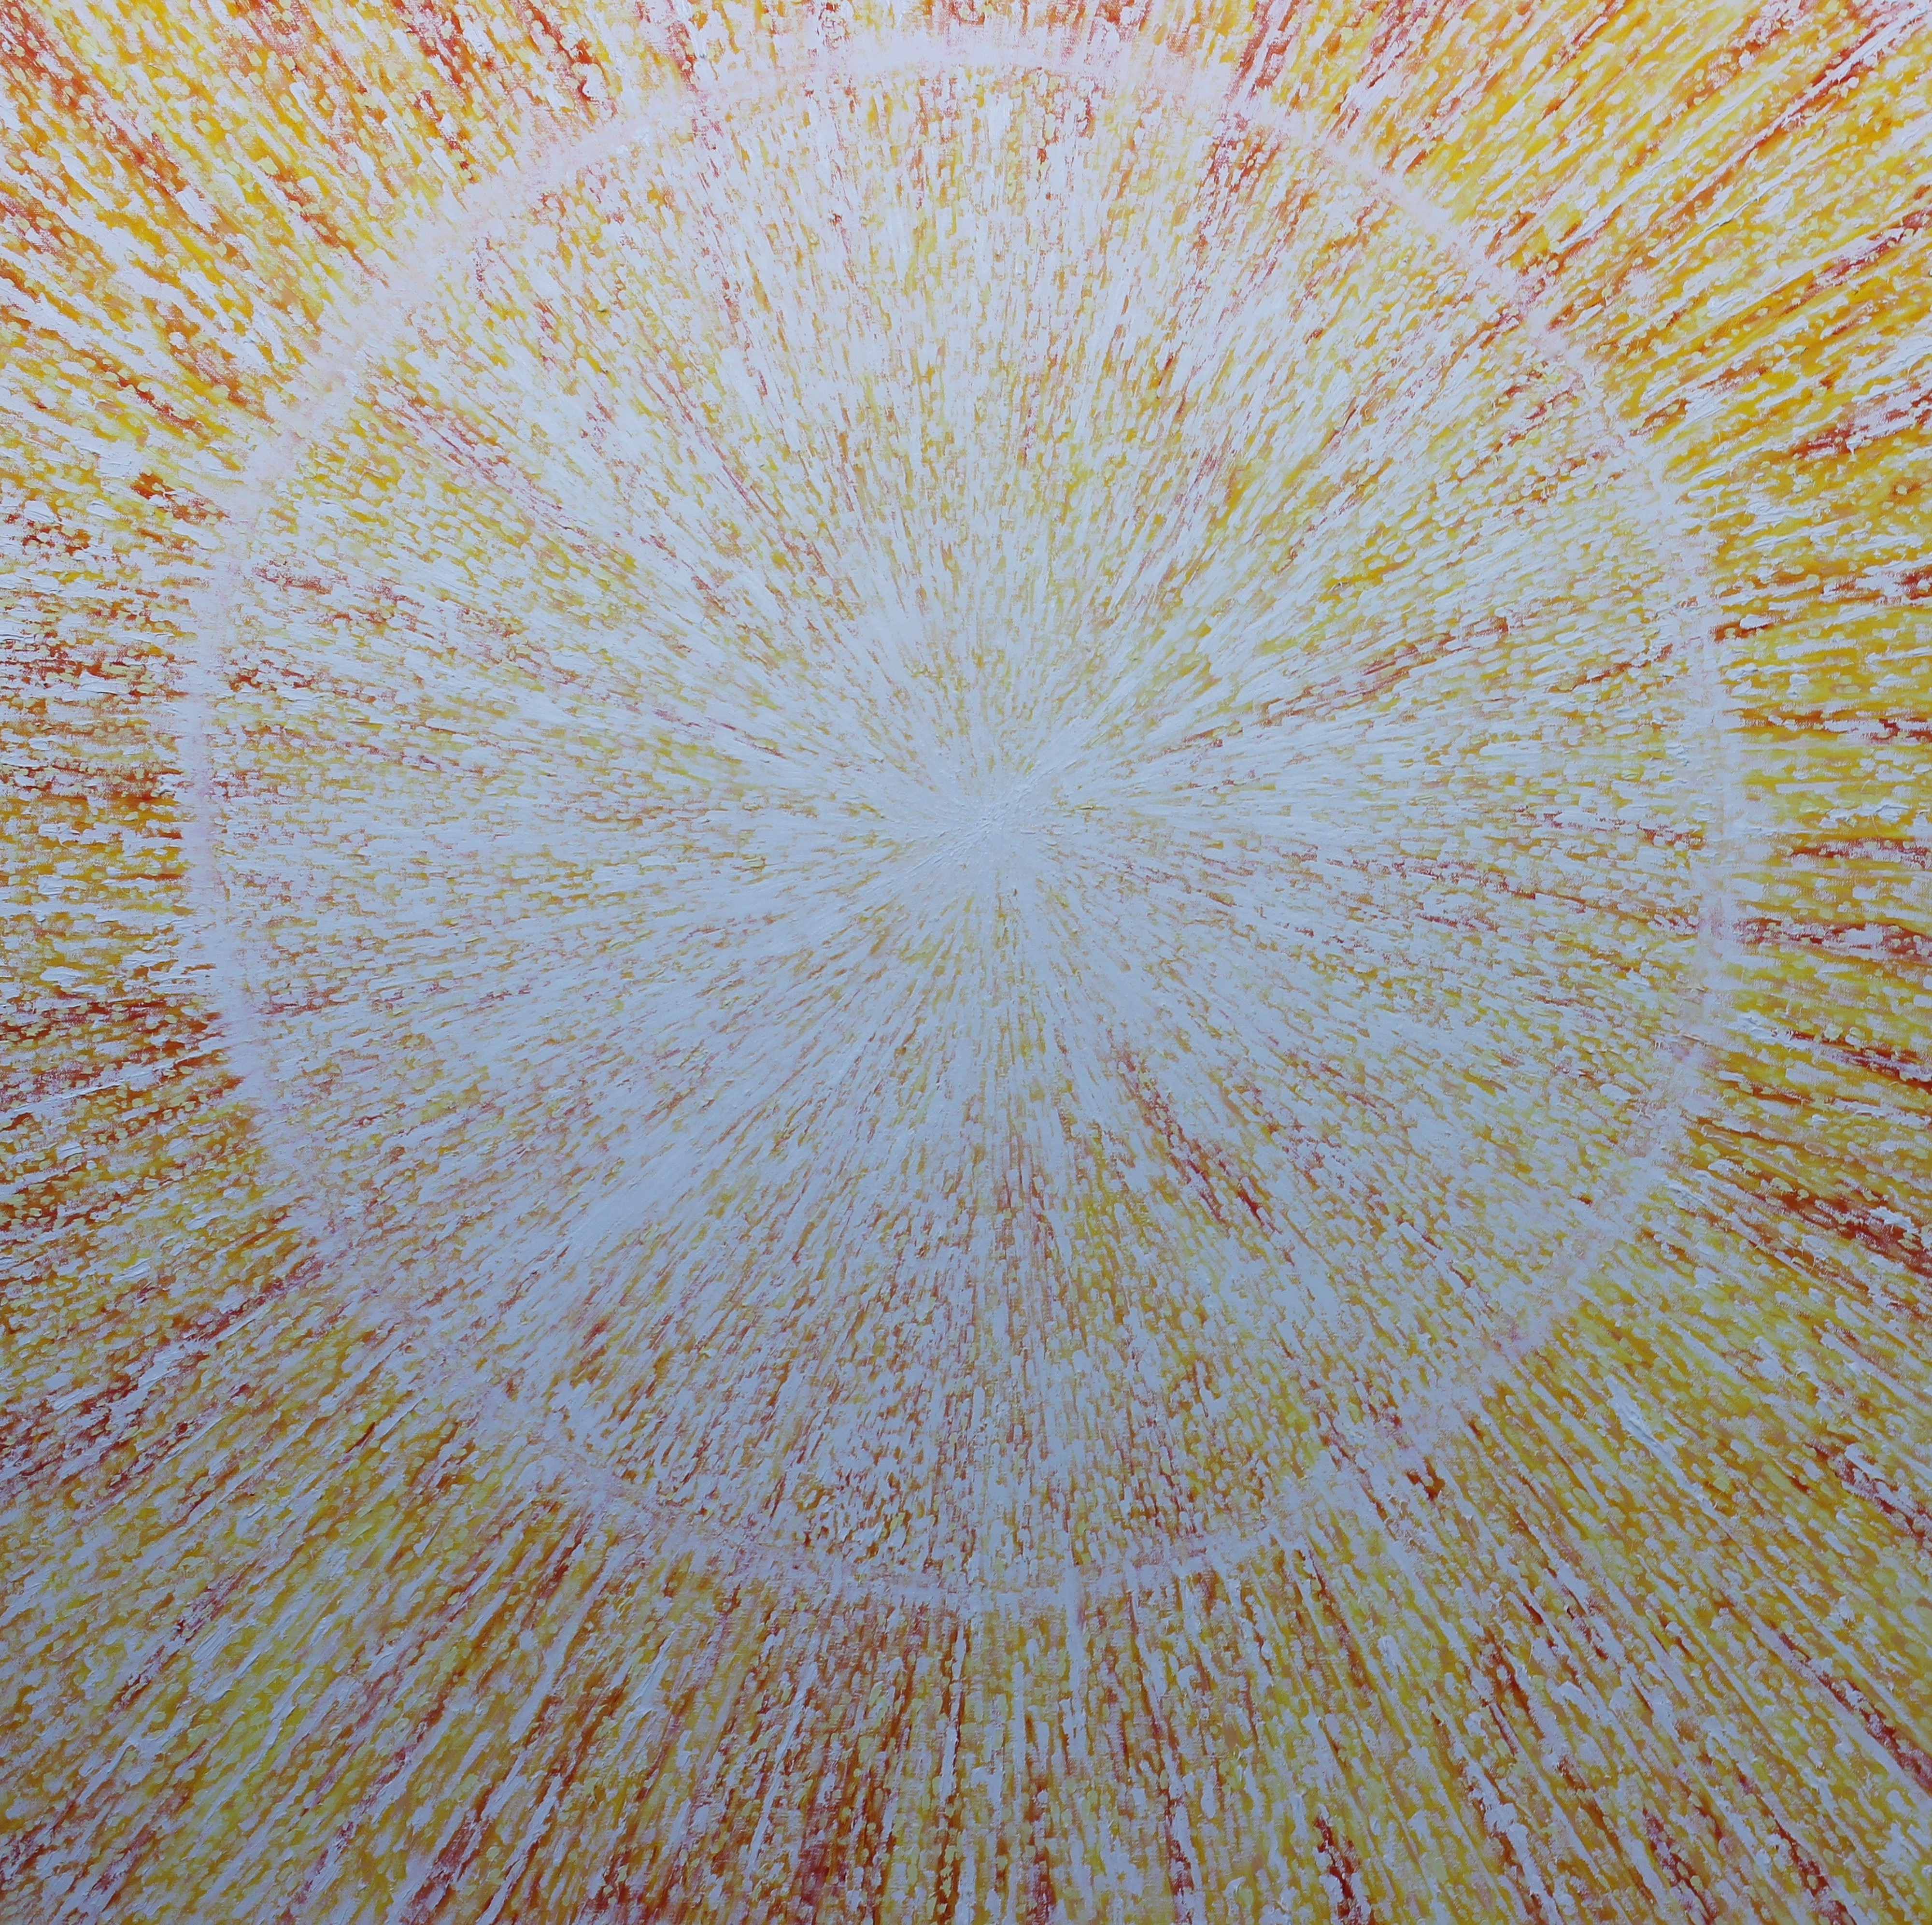 Transfiguration by Nick Hill | ArtworkNetwork.com